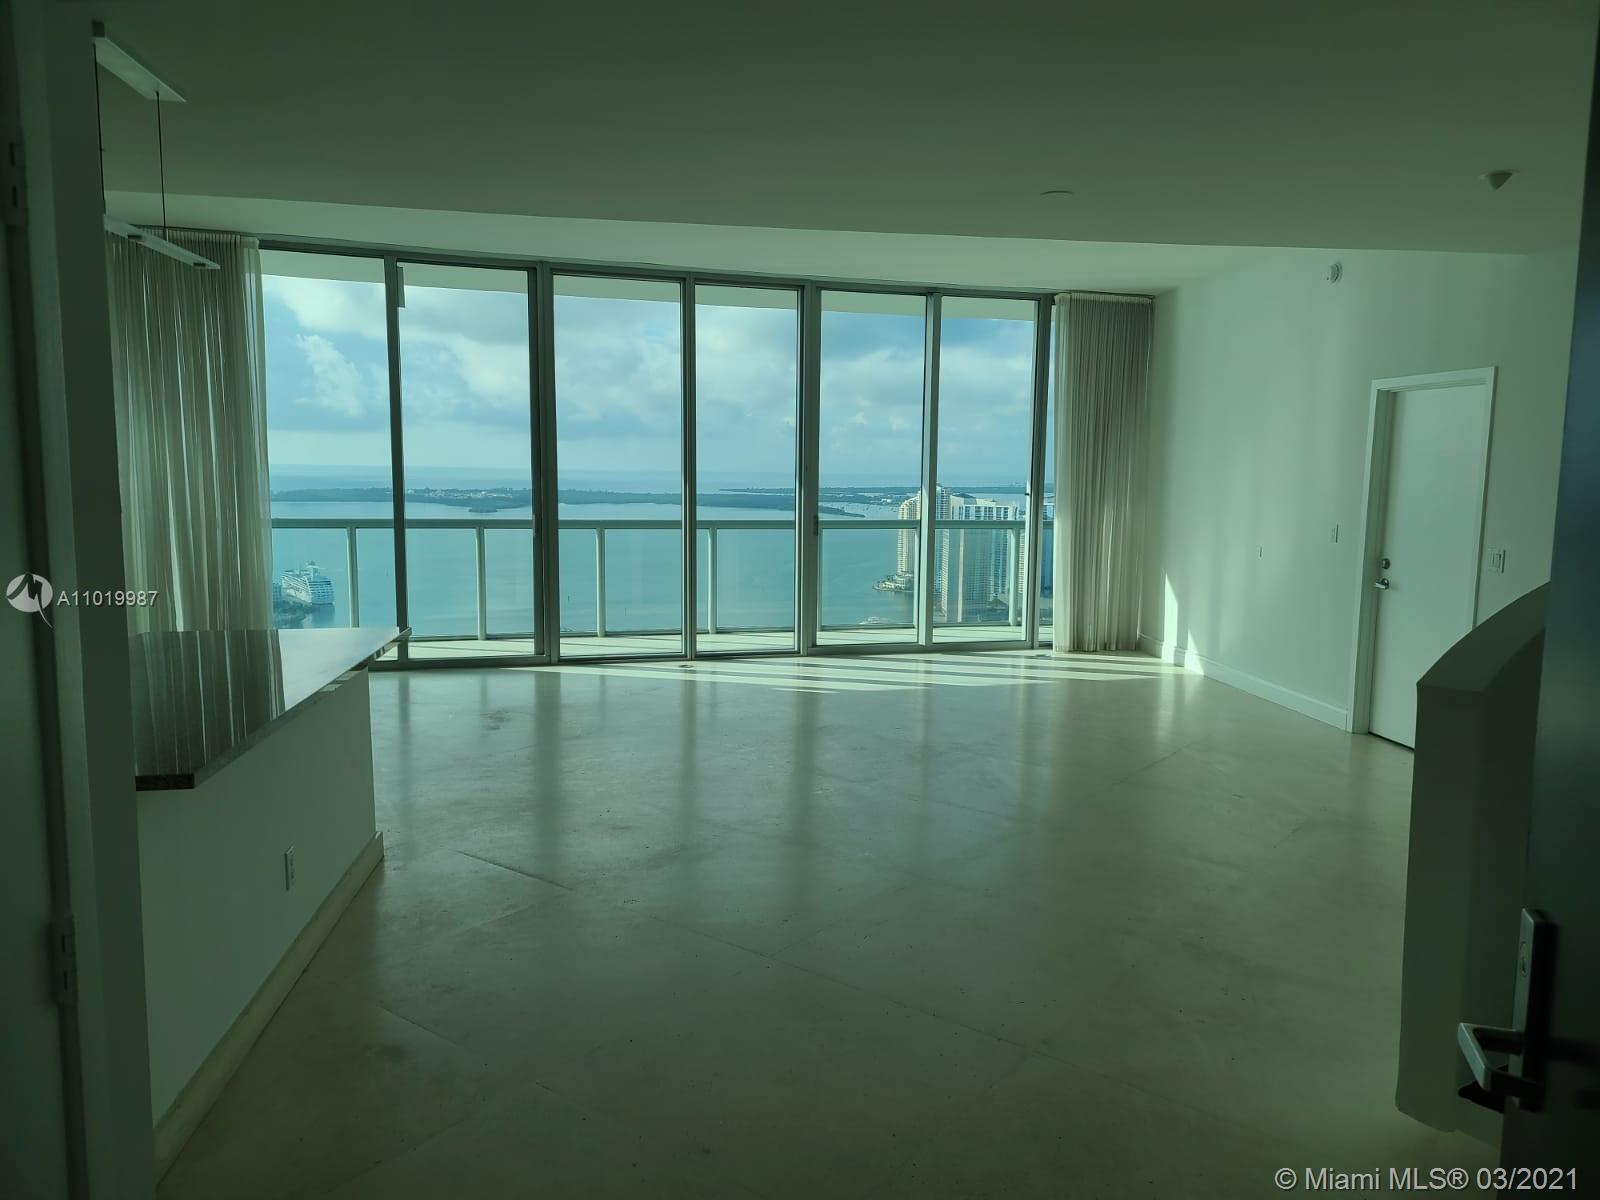 Breathtaking city and ocean views from this stunning 3 bedroom/3.5 bath, 2-story apartment on 55th a